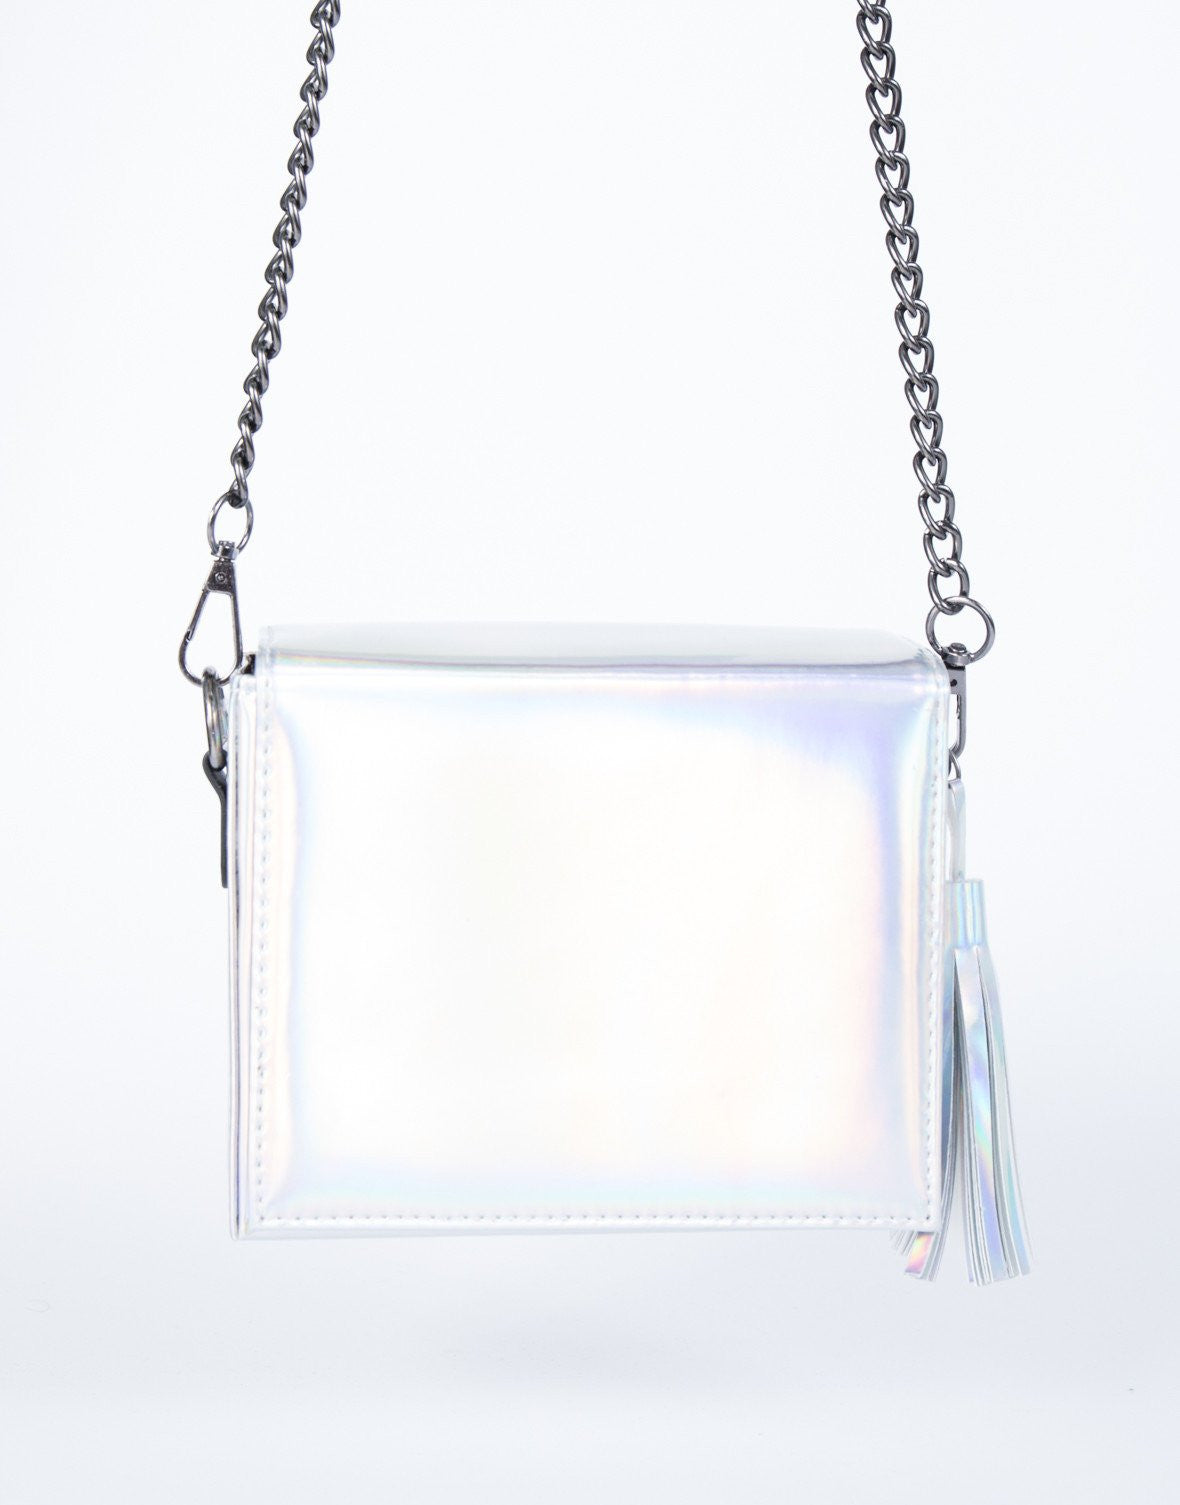 Silver Iridescent Crossbody Bag - Front View